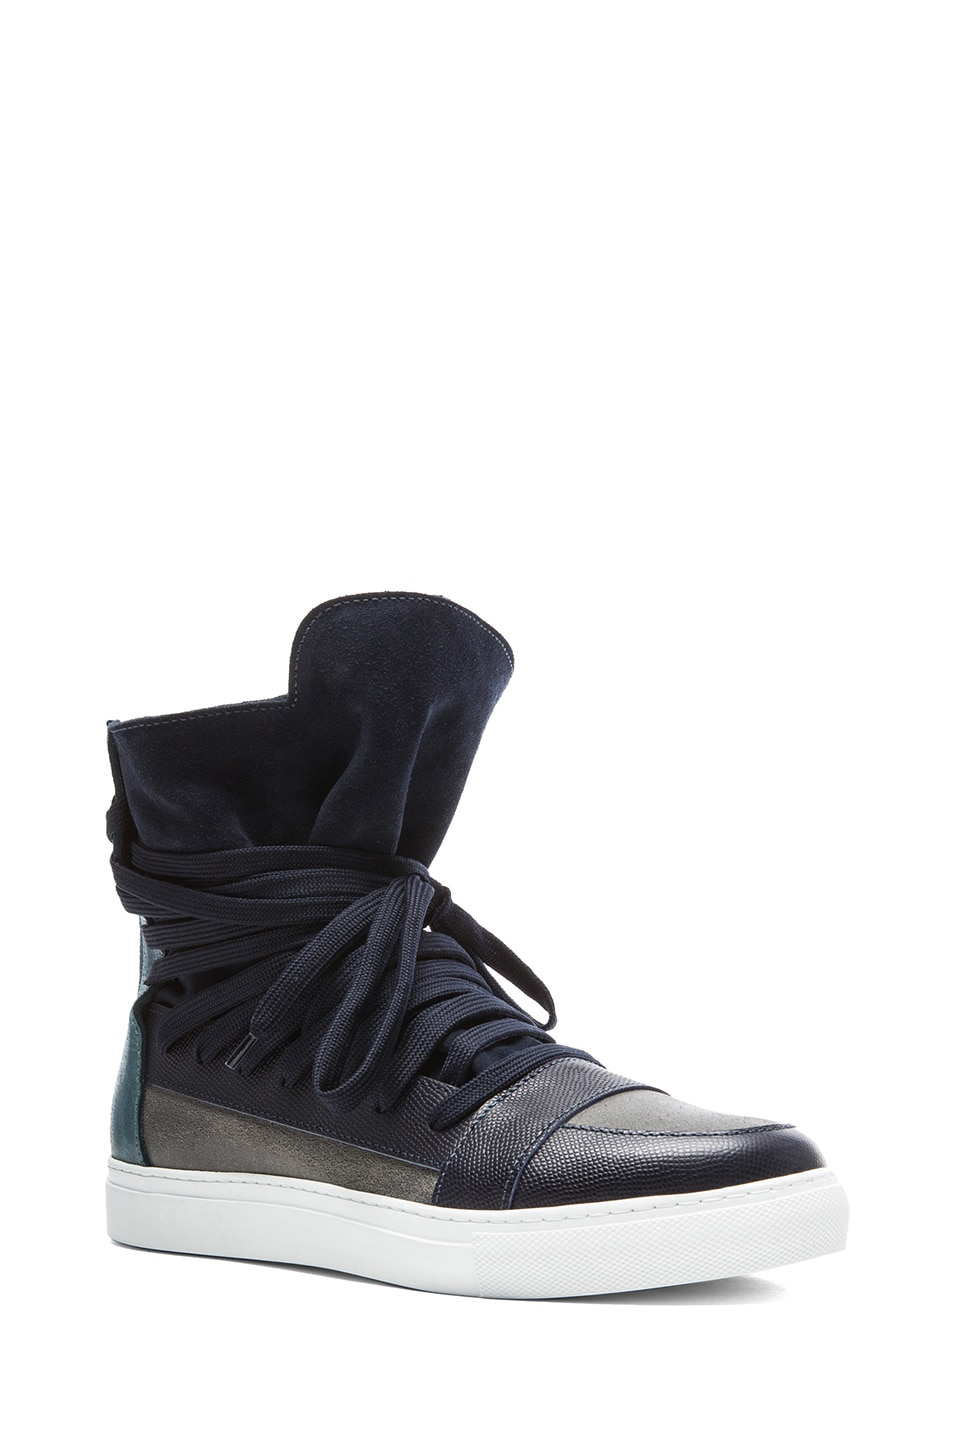 6afb688b4c Image 1 of Kris Van Assche Multi Lace Suede and Leather Sneakers in Blue  Multi